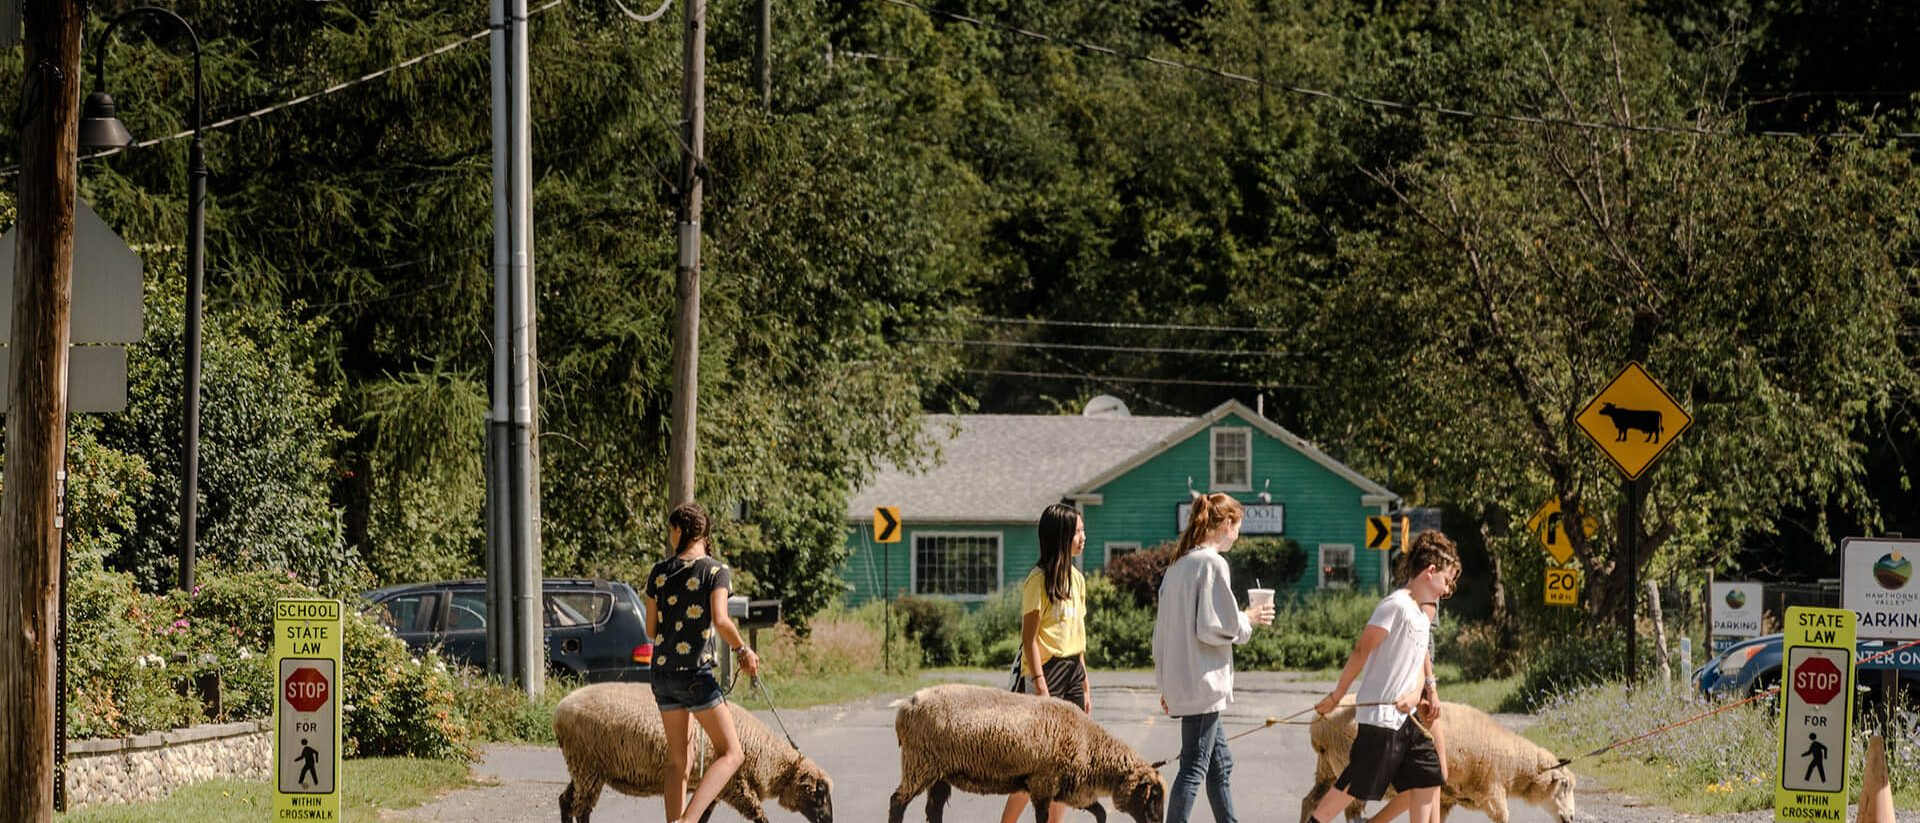 summer campers walking sheep to pasture